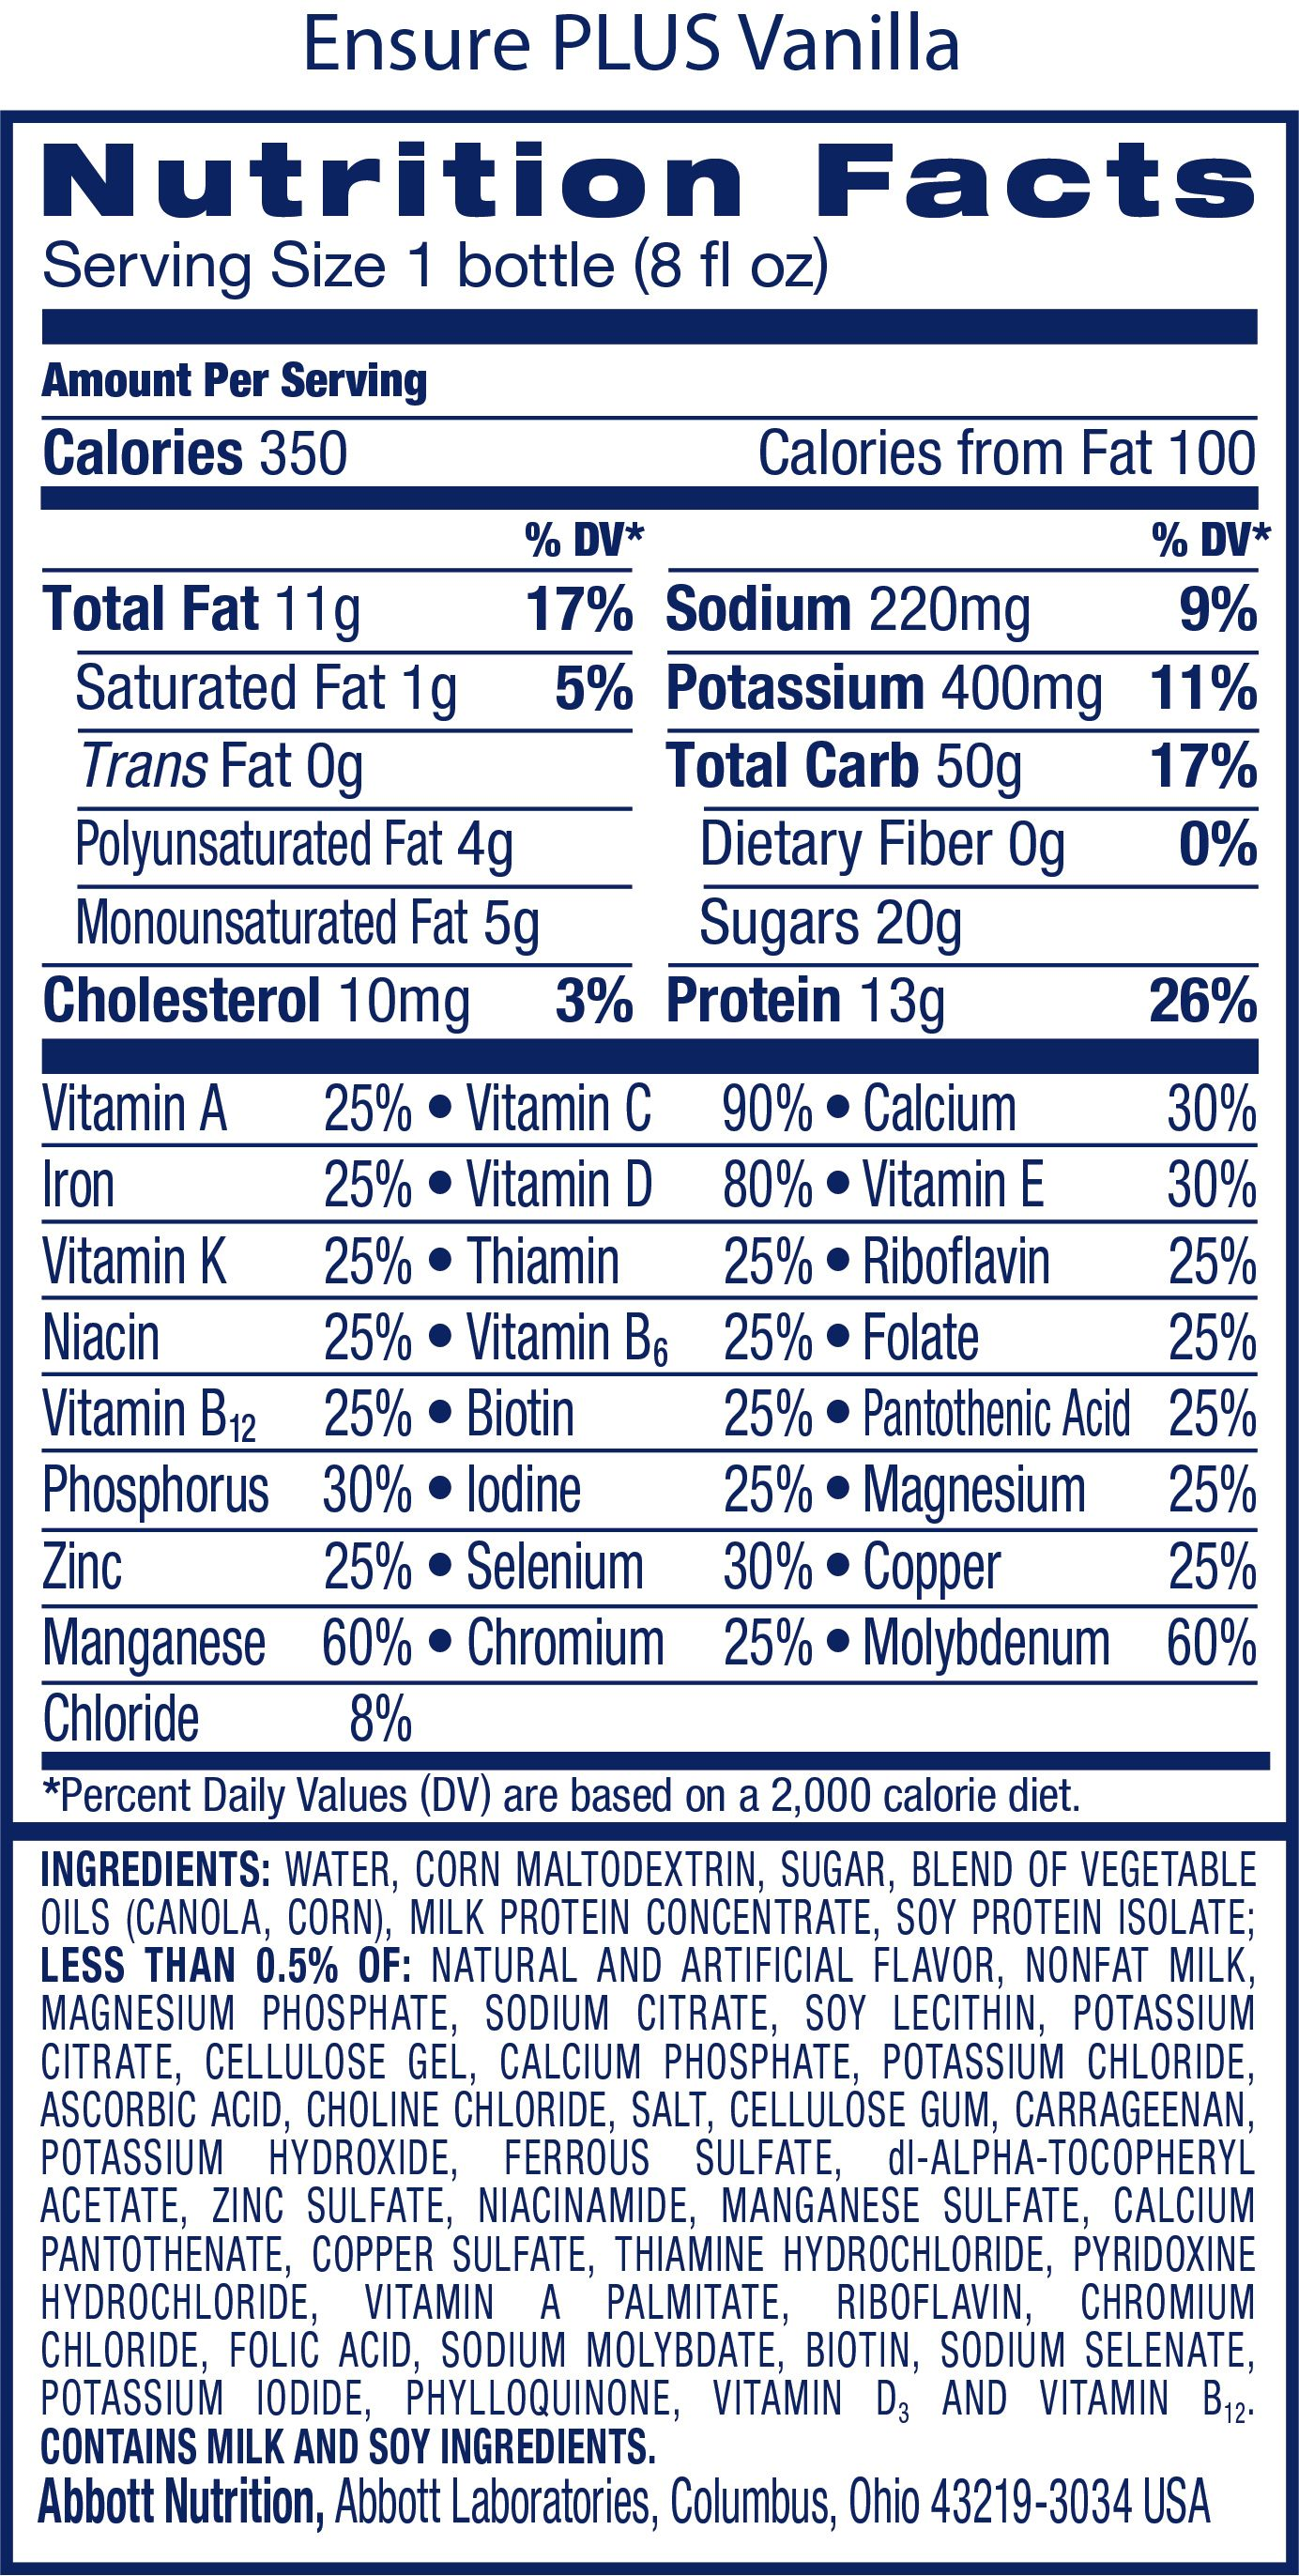 Ensure Plus Nutrition Facts Label In 2021 Nutrition Facts Label Vanilla Nutrition Nutrition Facts